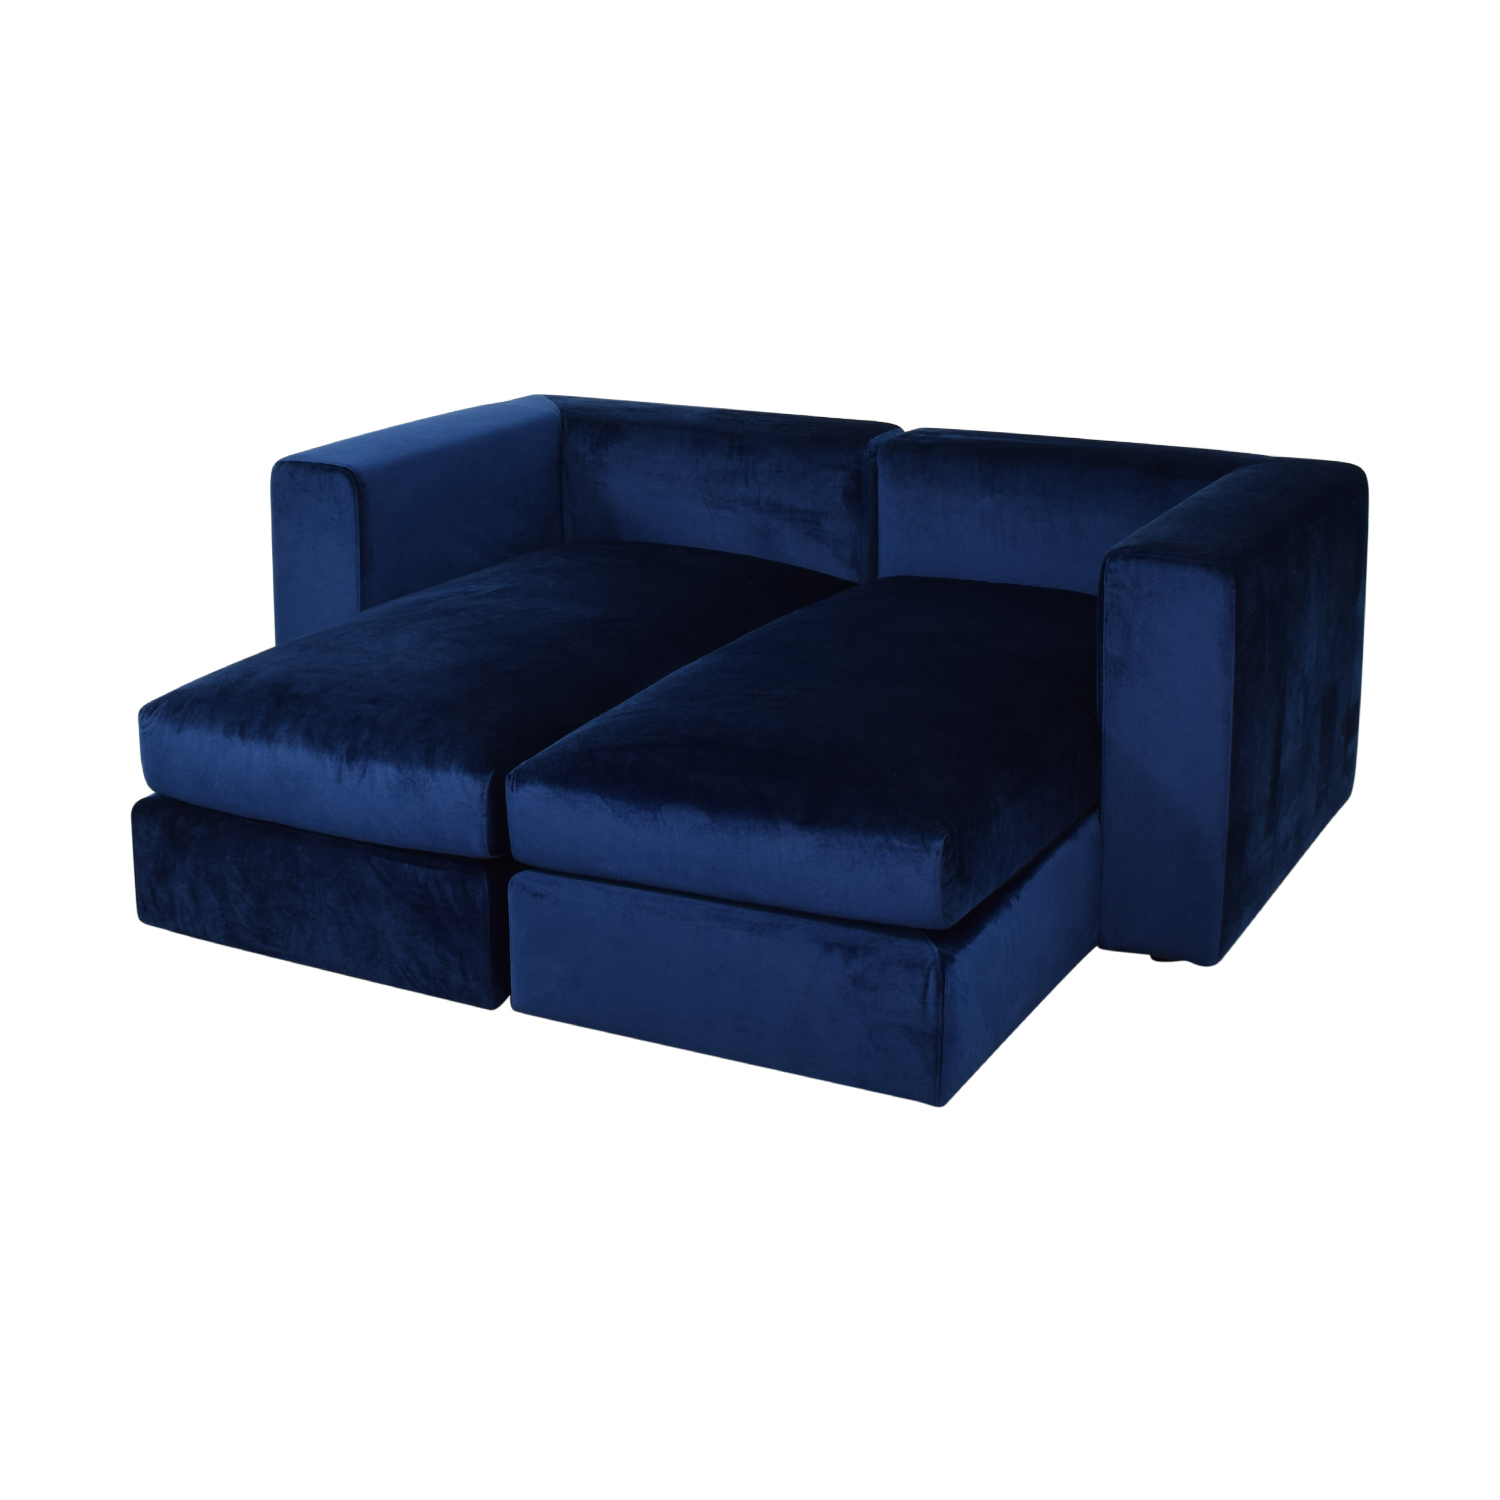 69% OFF   Toby Velvet Oxford Blue Double Chaise Sectional Sofa / Sofas